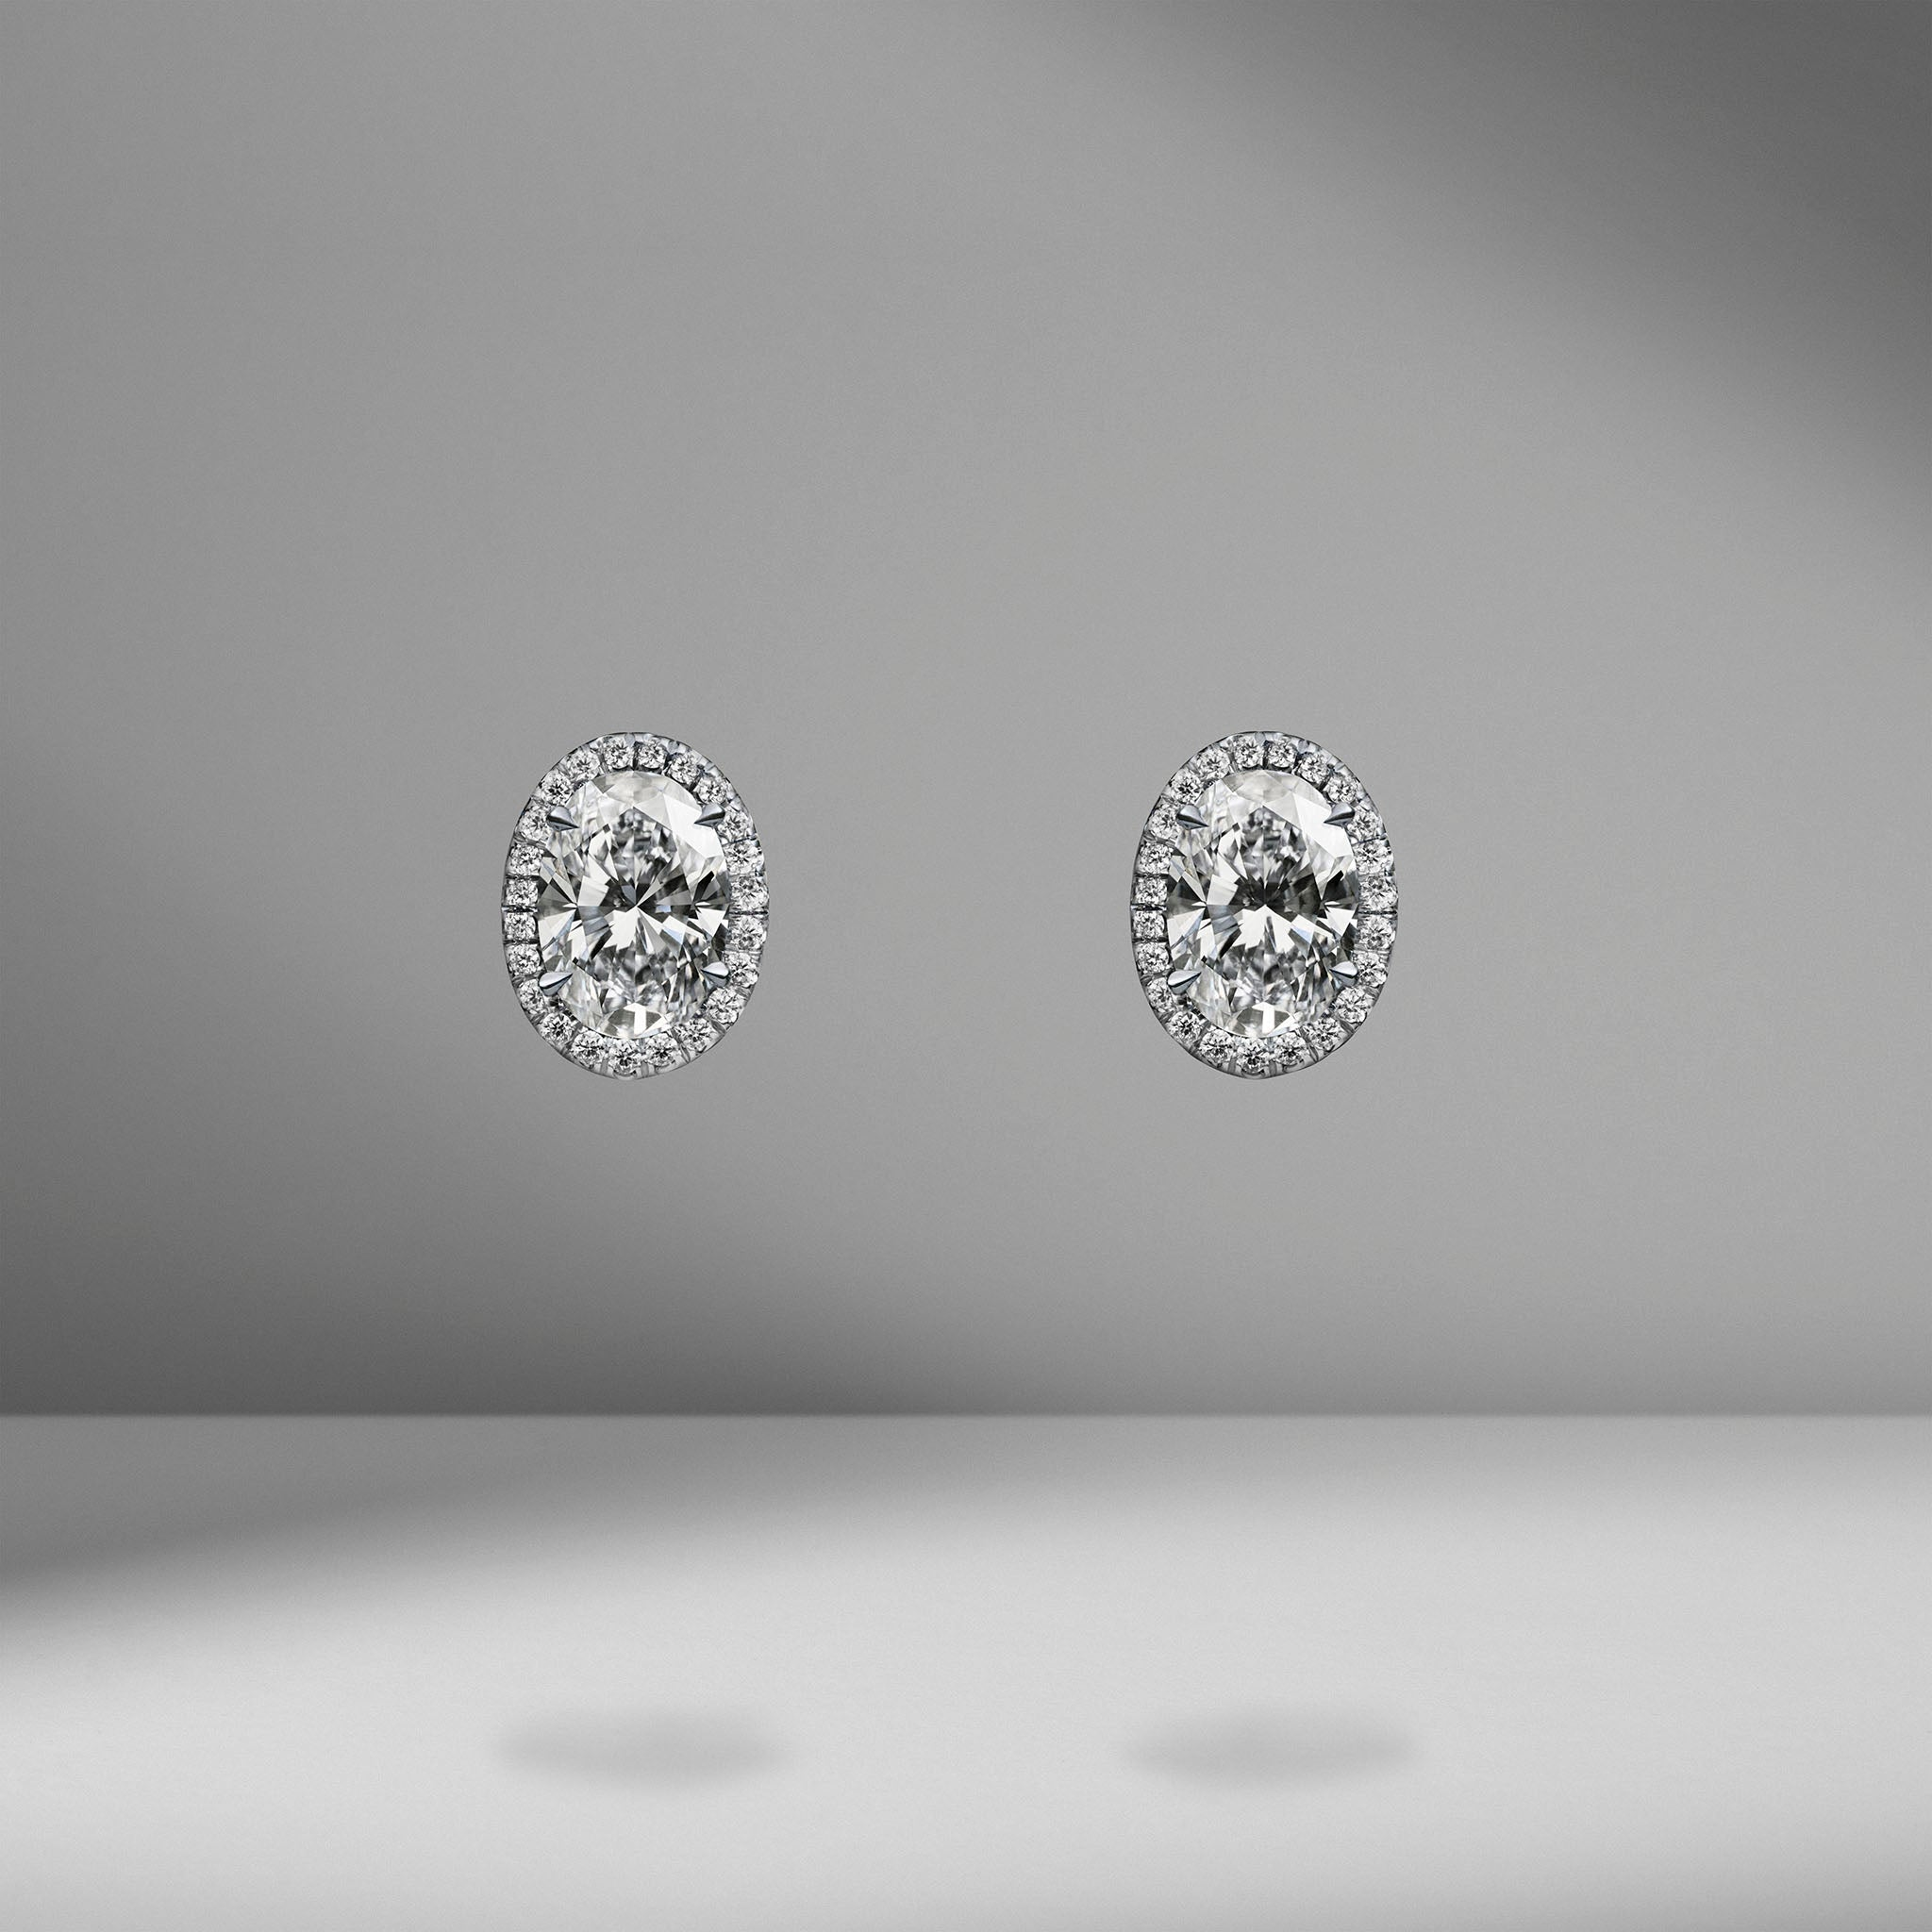 Oval Cut Diamond Studs with Micro Pavé Halo